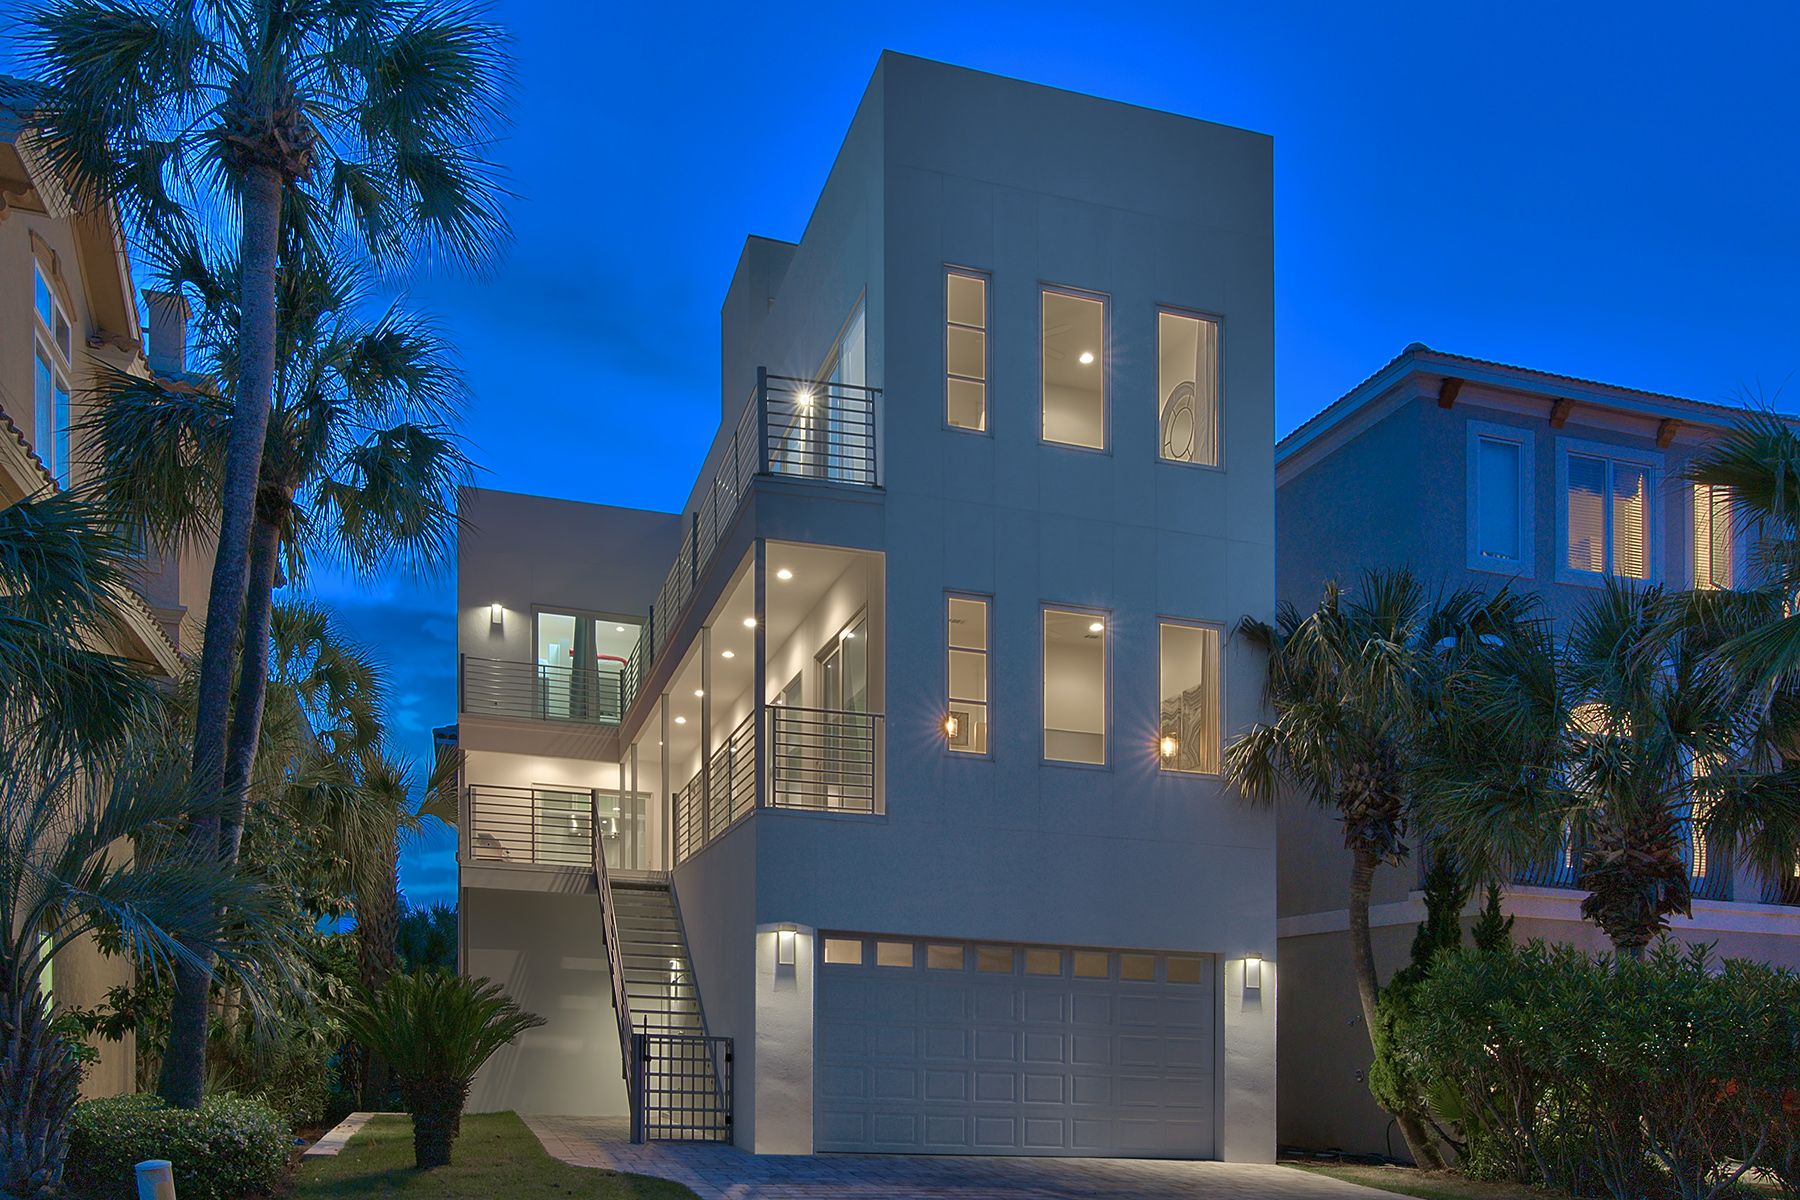 Maison unifamiliale pour l Vente à STRIKING GULF VIEW CONTEMPORARY 33 Caicos Cay Destin, Florida, 32541 États-Unis